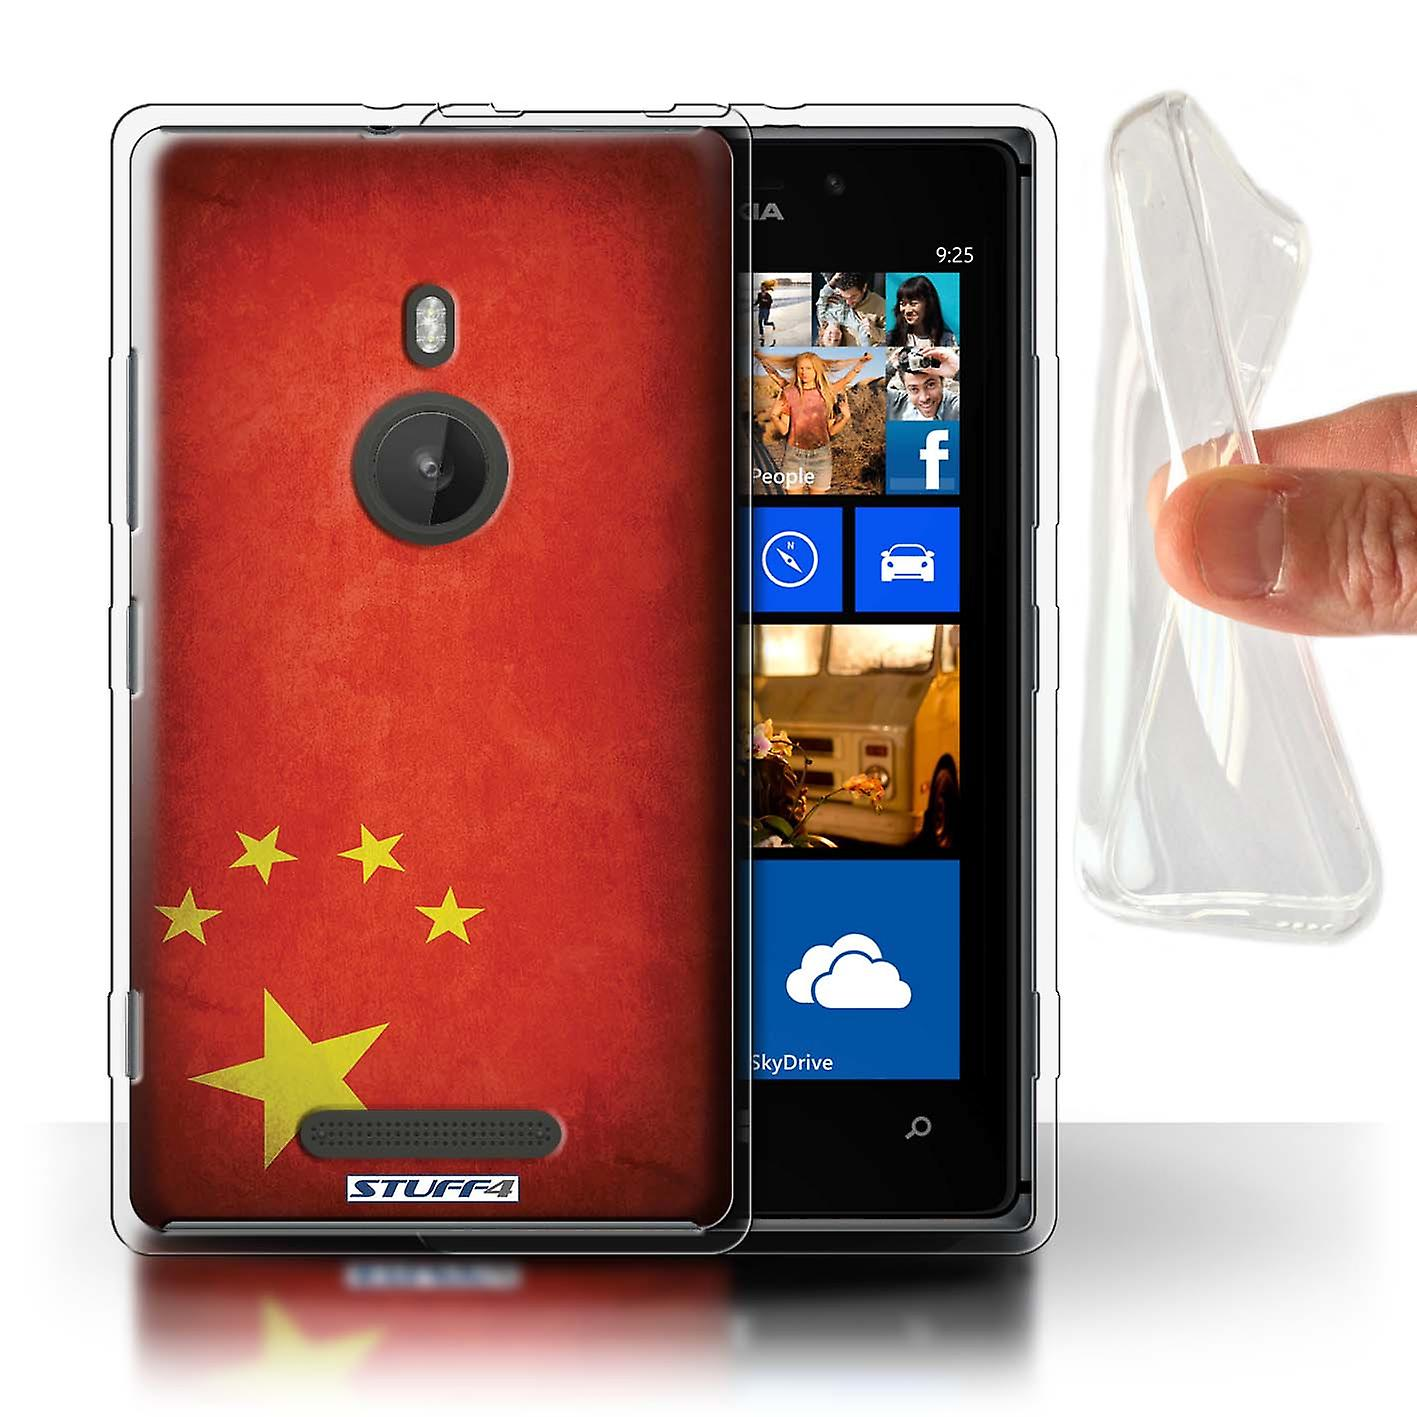 STUFF4 Gel TPU Case/Cover for Nokia Lumia 925/China/Chinese/Flags